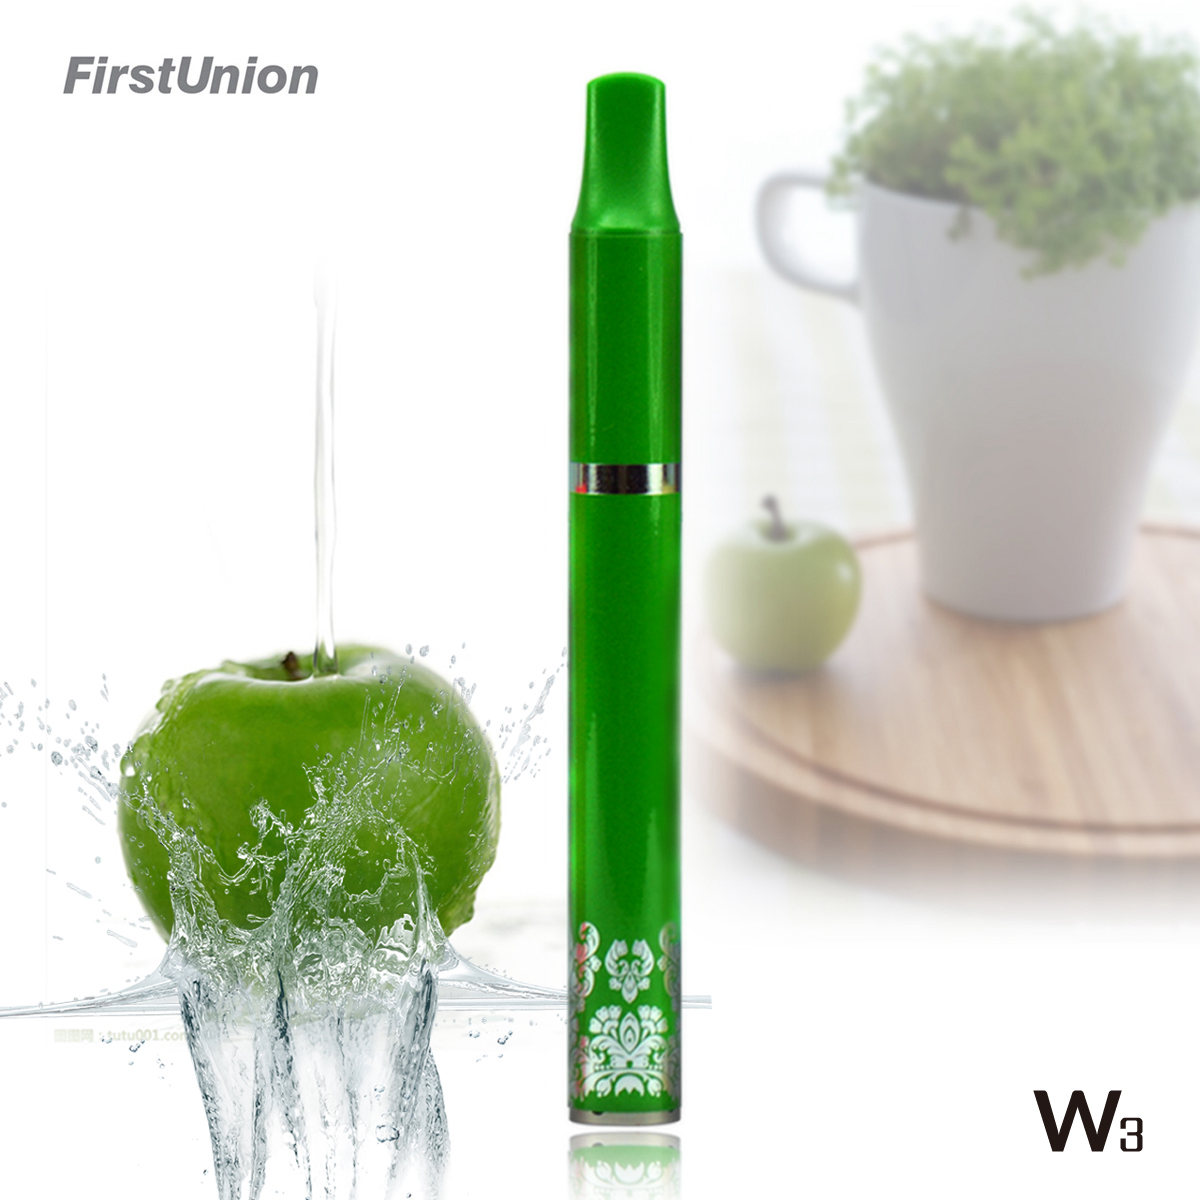 New revolutionary product the best e cigarette W3 1000puffs fresh fruit flavors ecig canada